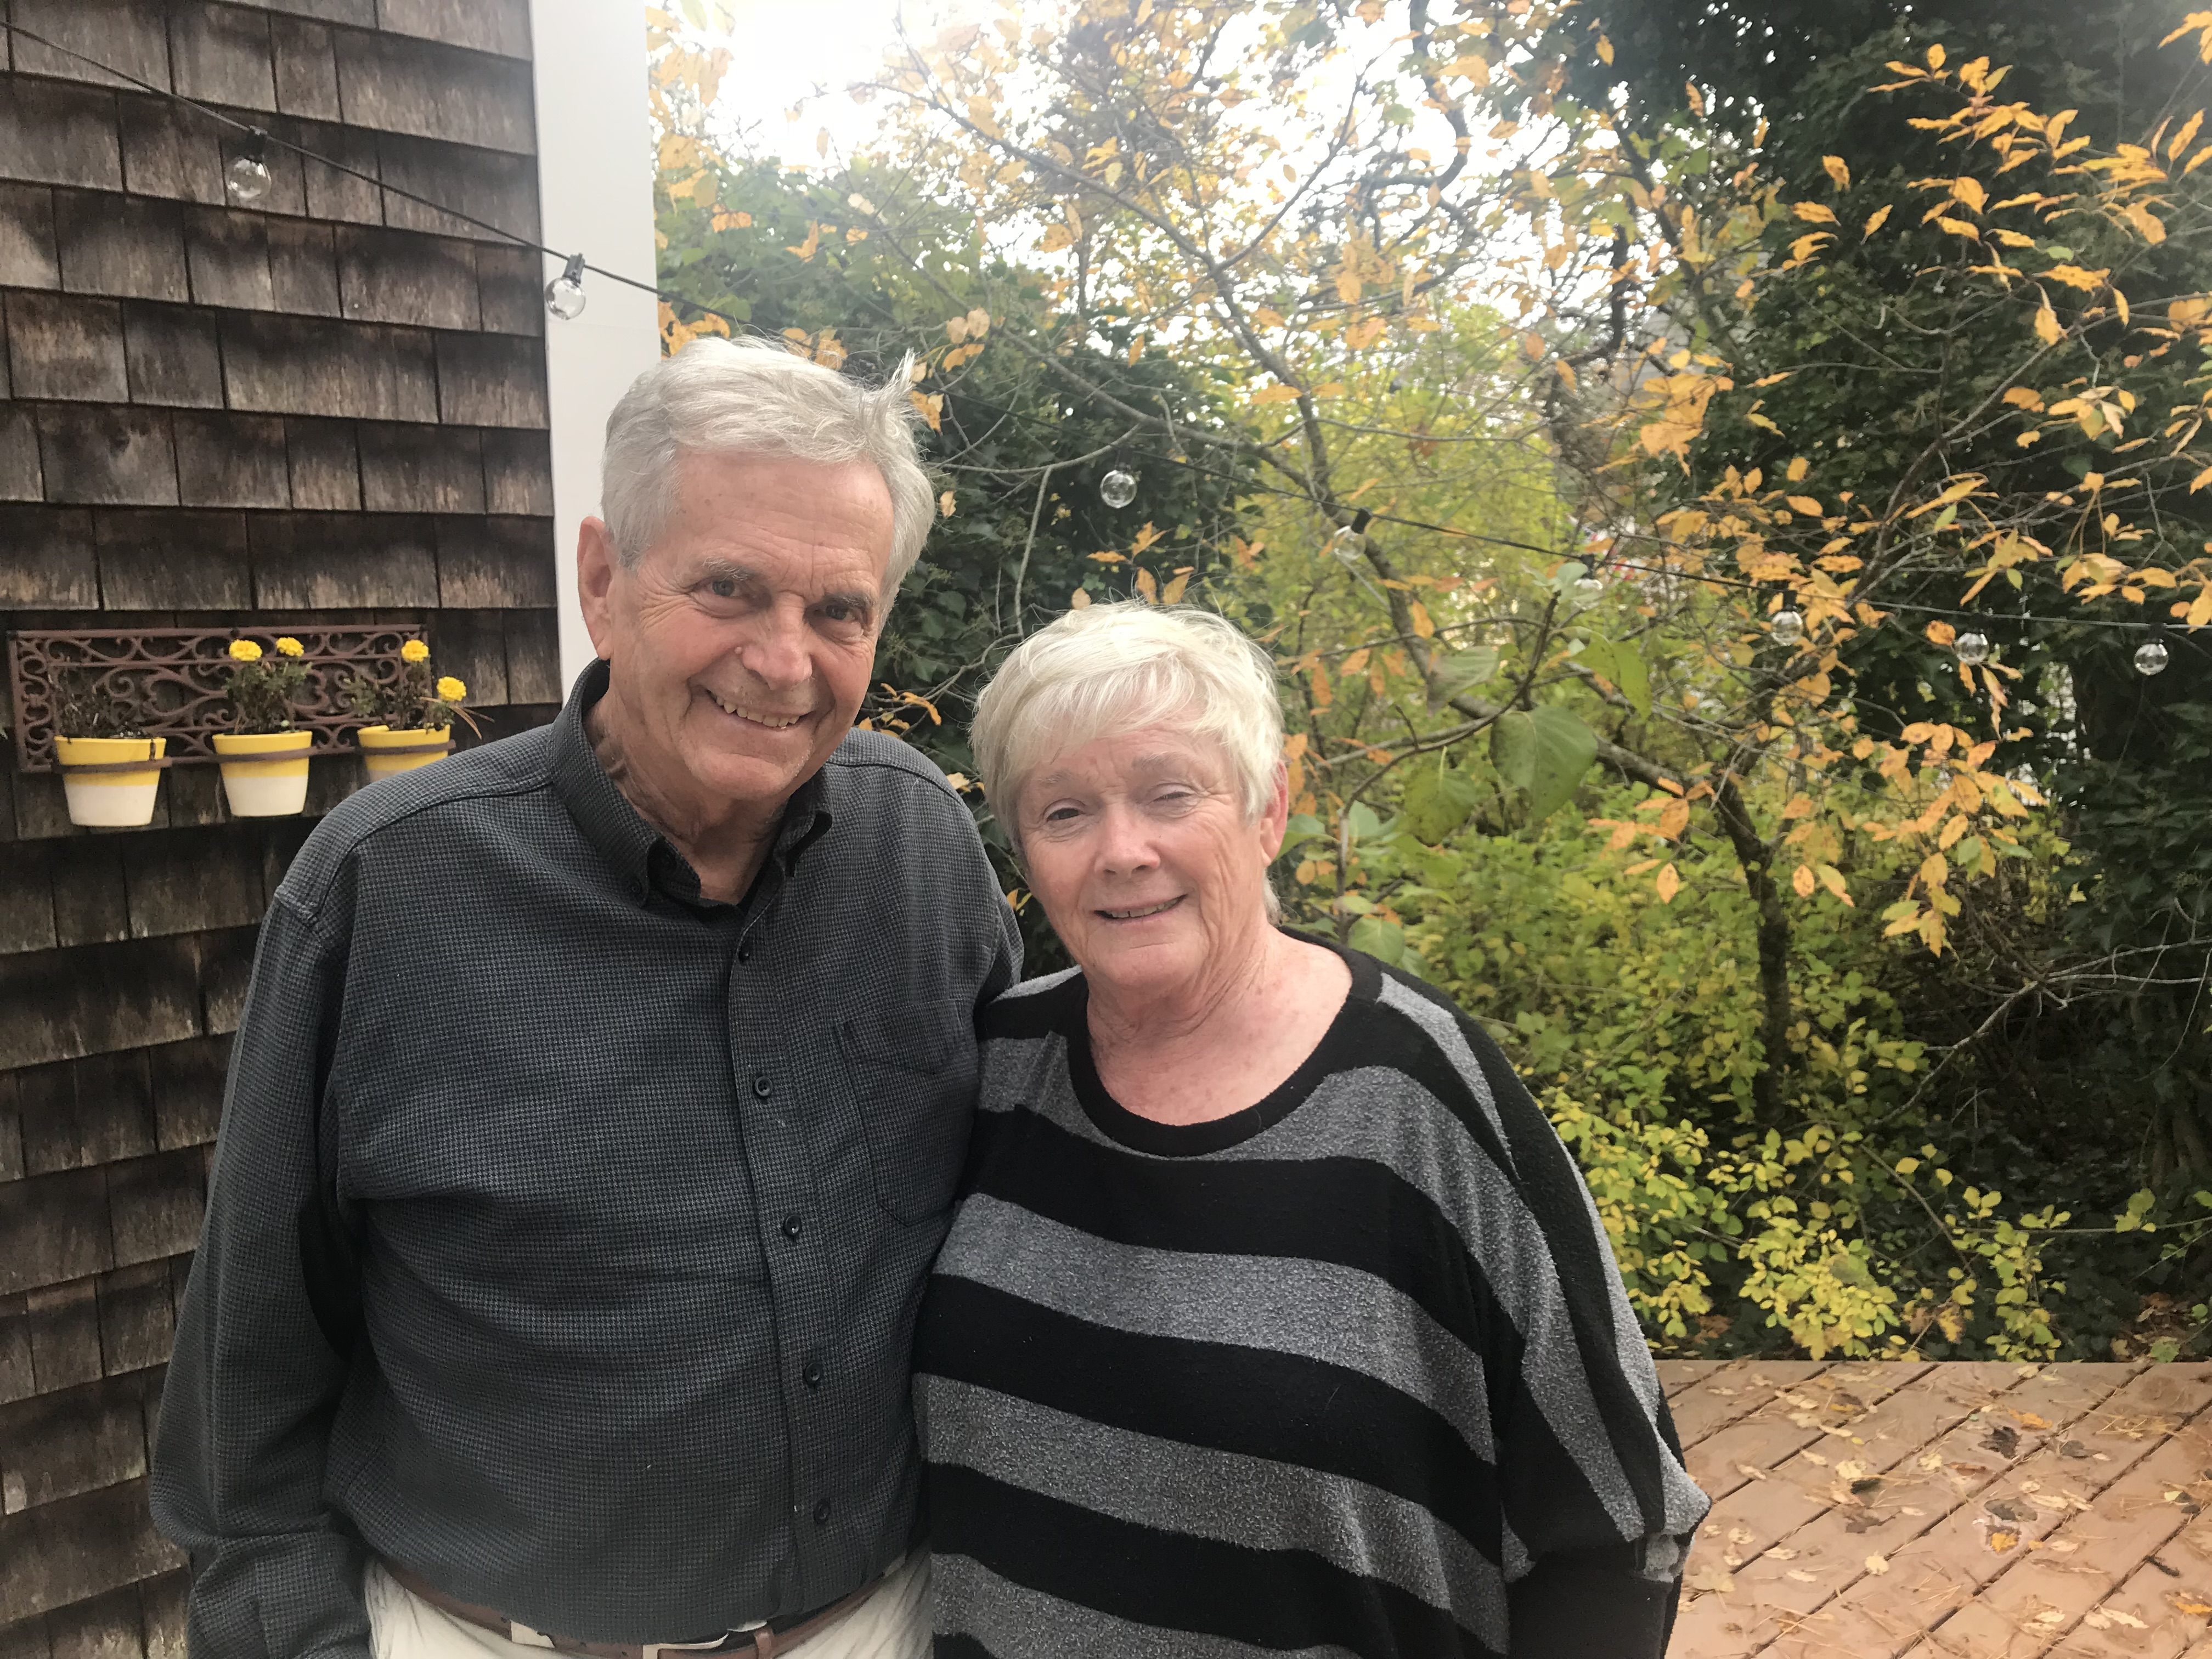 Caption: Mark and Patti McGrath at their home in Harwich. Taken in November 2018, Credit: Brandon Tenney